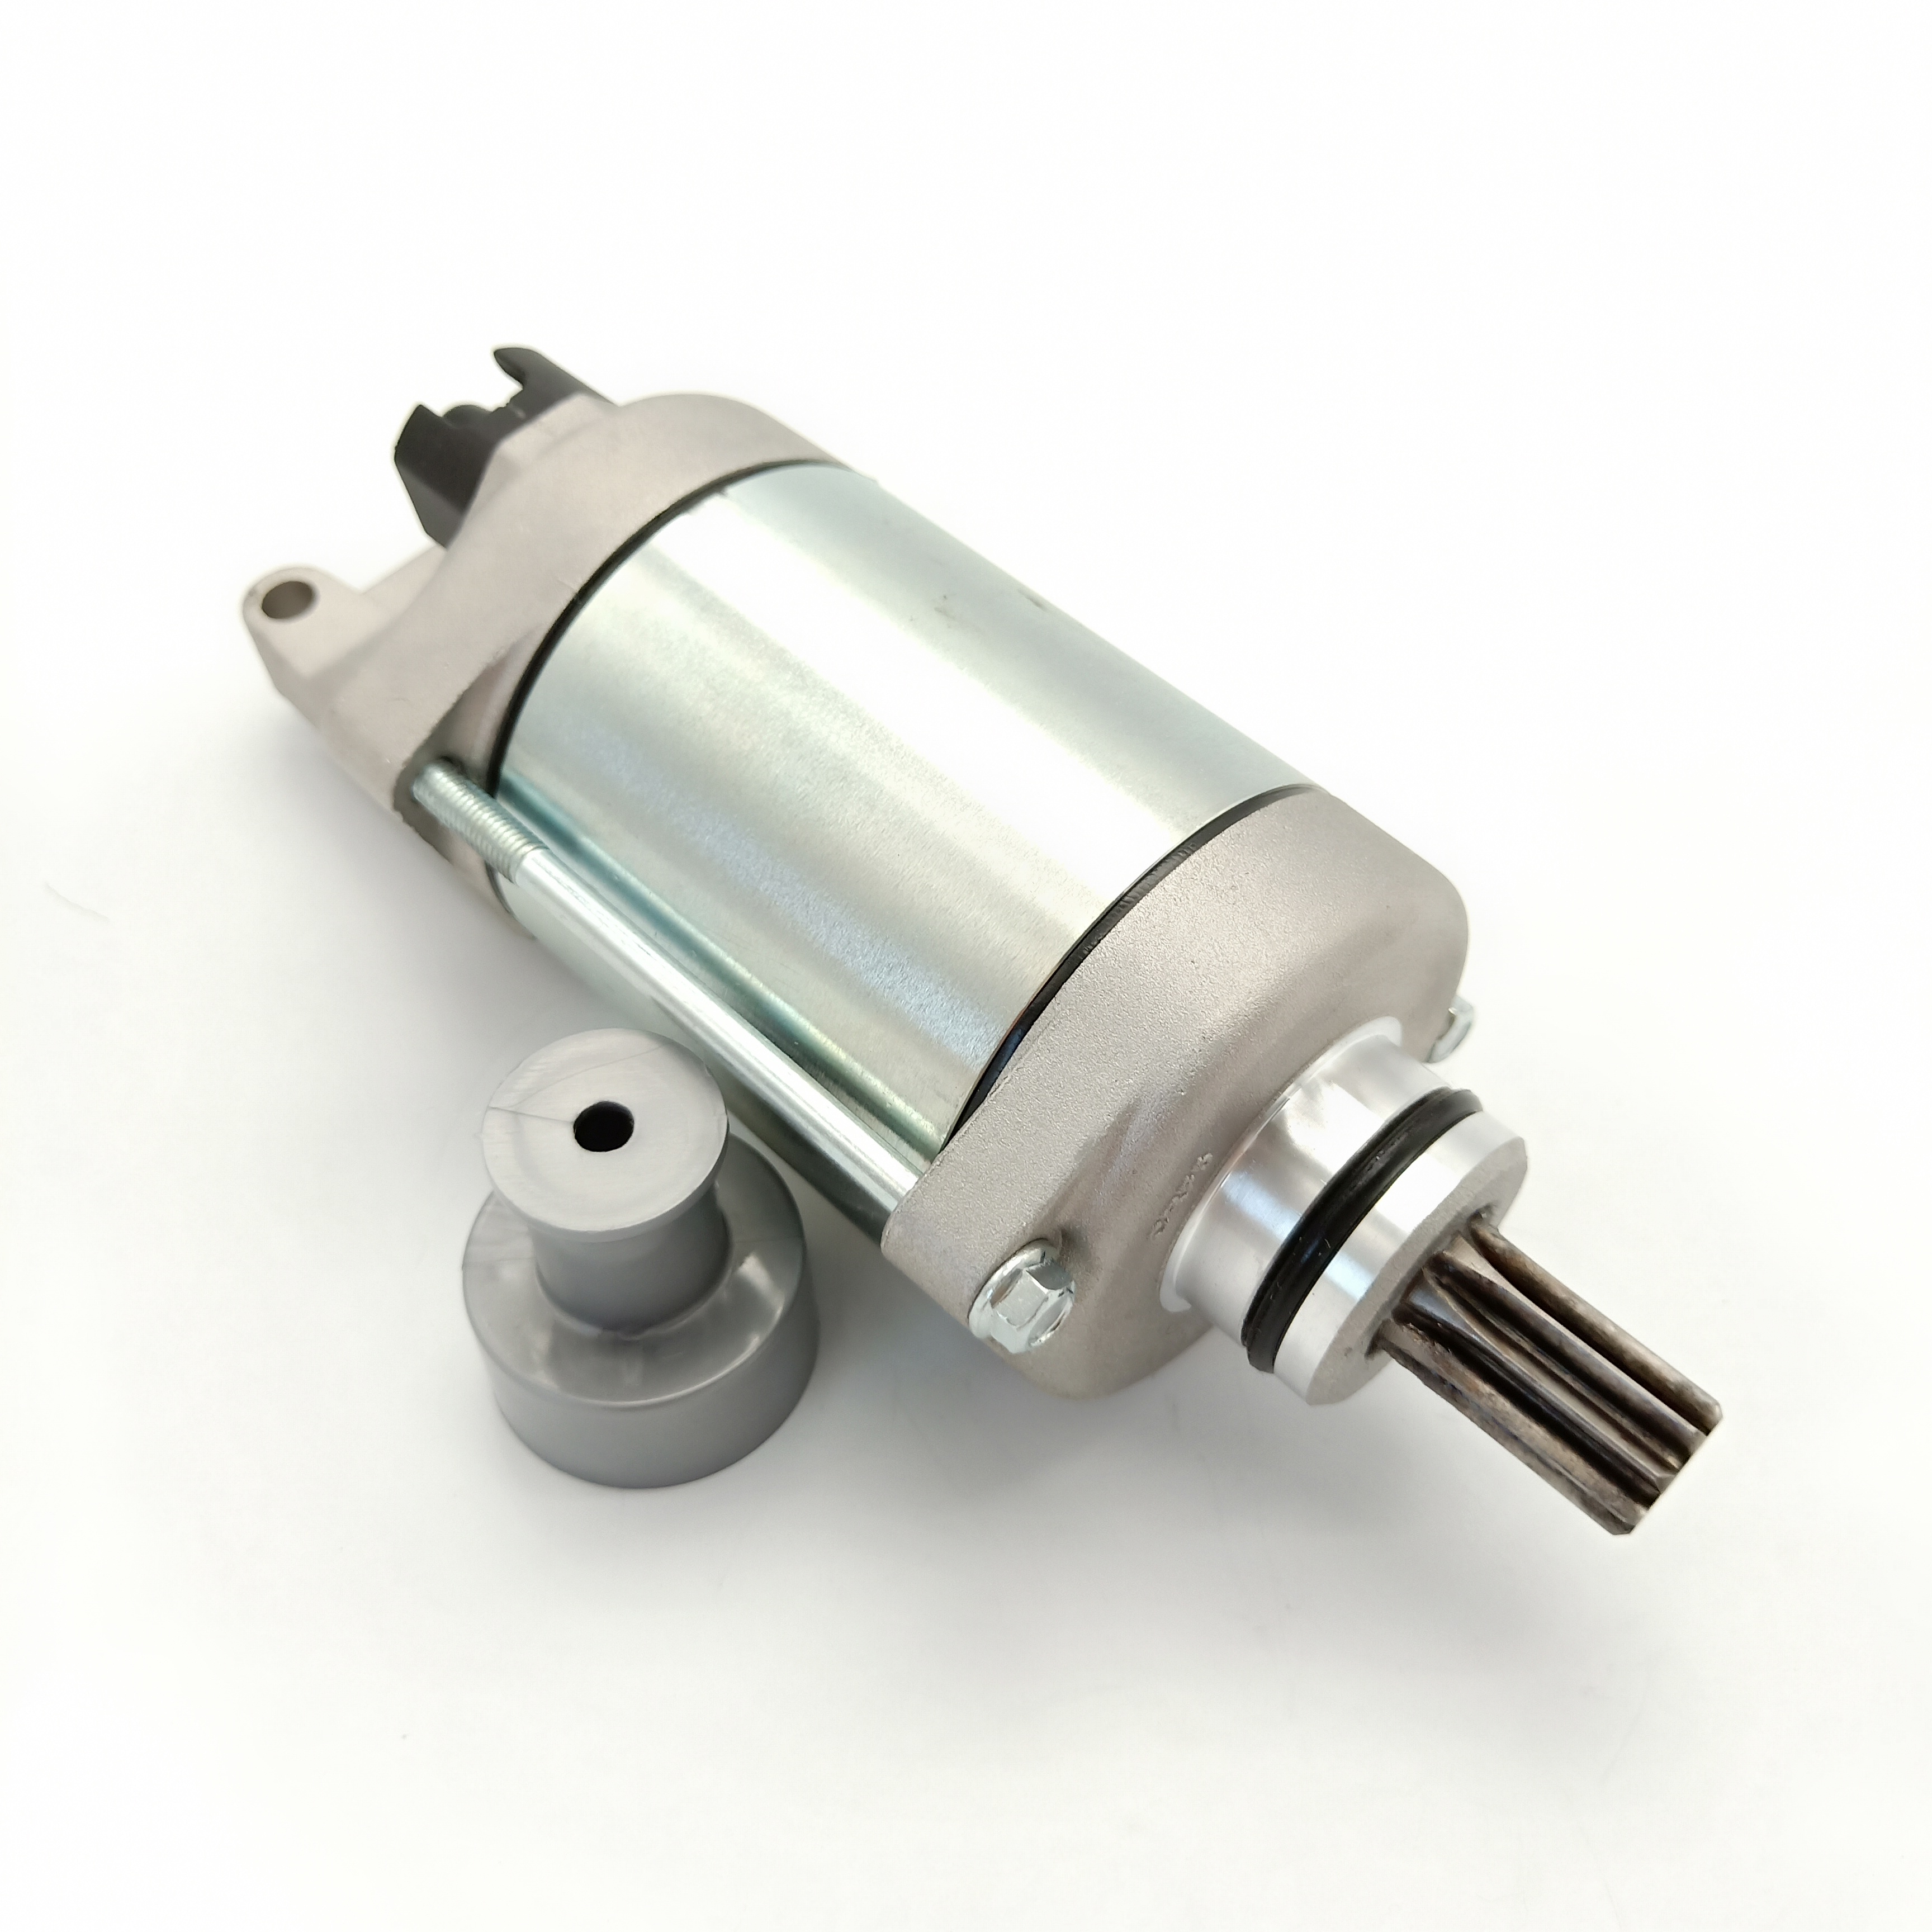 NEW STARTER For YAMAHA MOTORCYCLE 500XP 530 TMAX 01-10 5GJ-81890-00-00 4B5818900000(China)